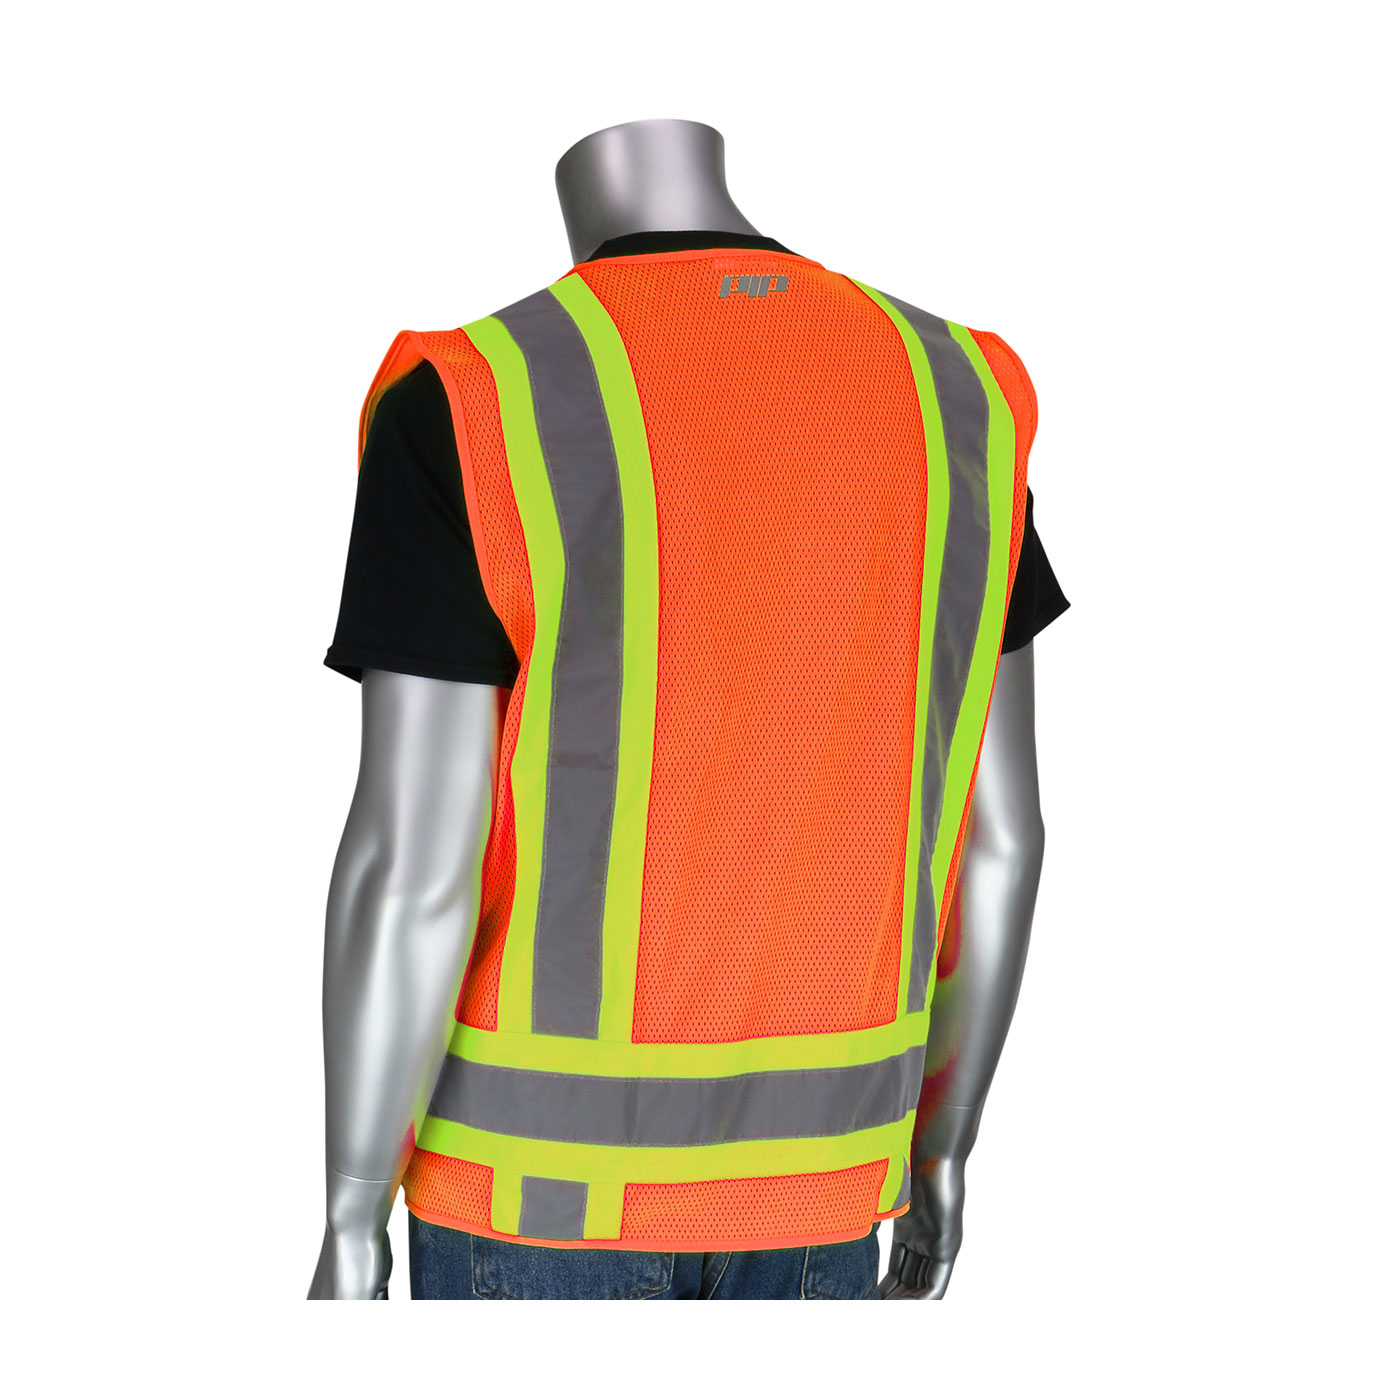 PIP® ANSI Type R Class 2 Two-Tone Eleven Pocket Surveyors Mesh Vest #302-0500M-OR